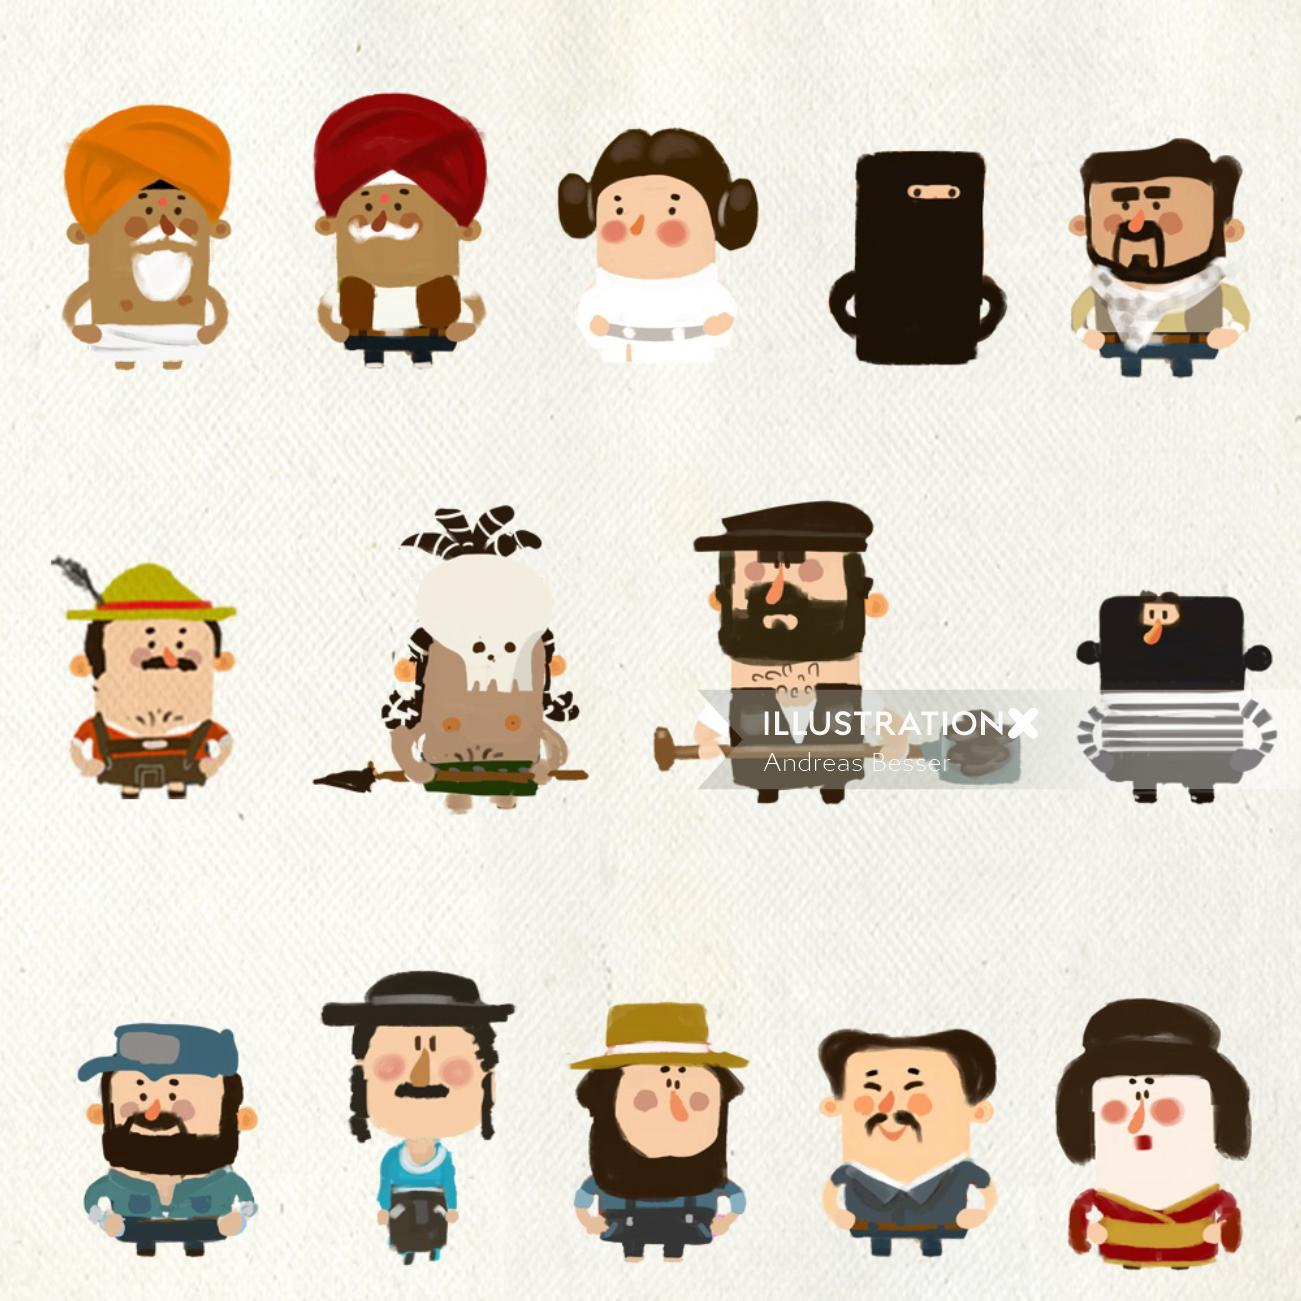 Cartoon characters of people